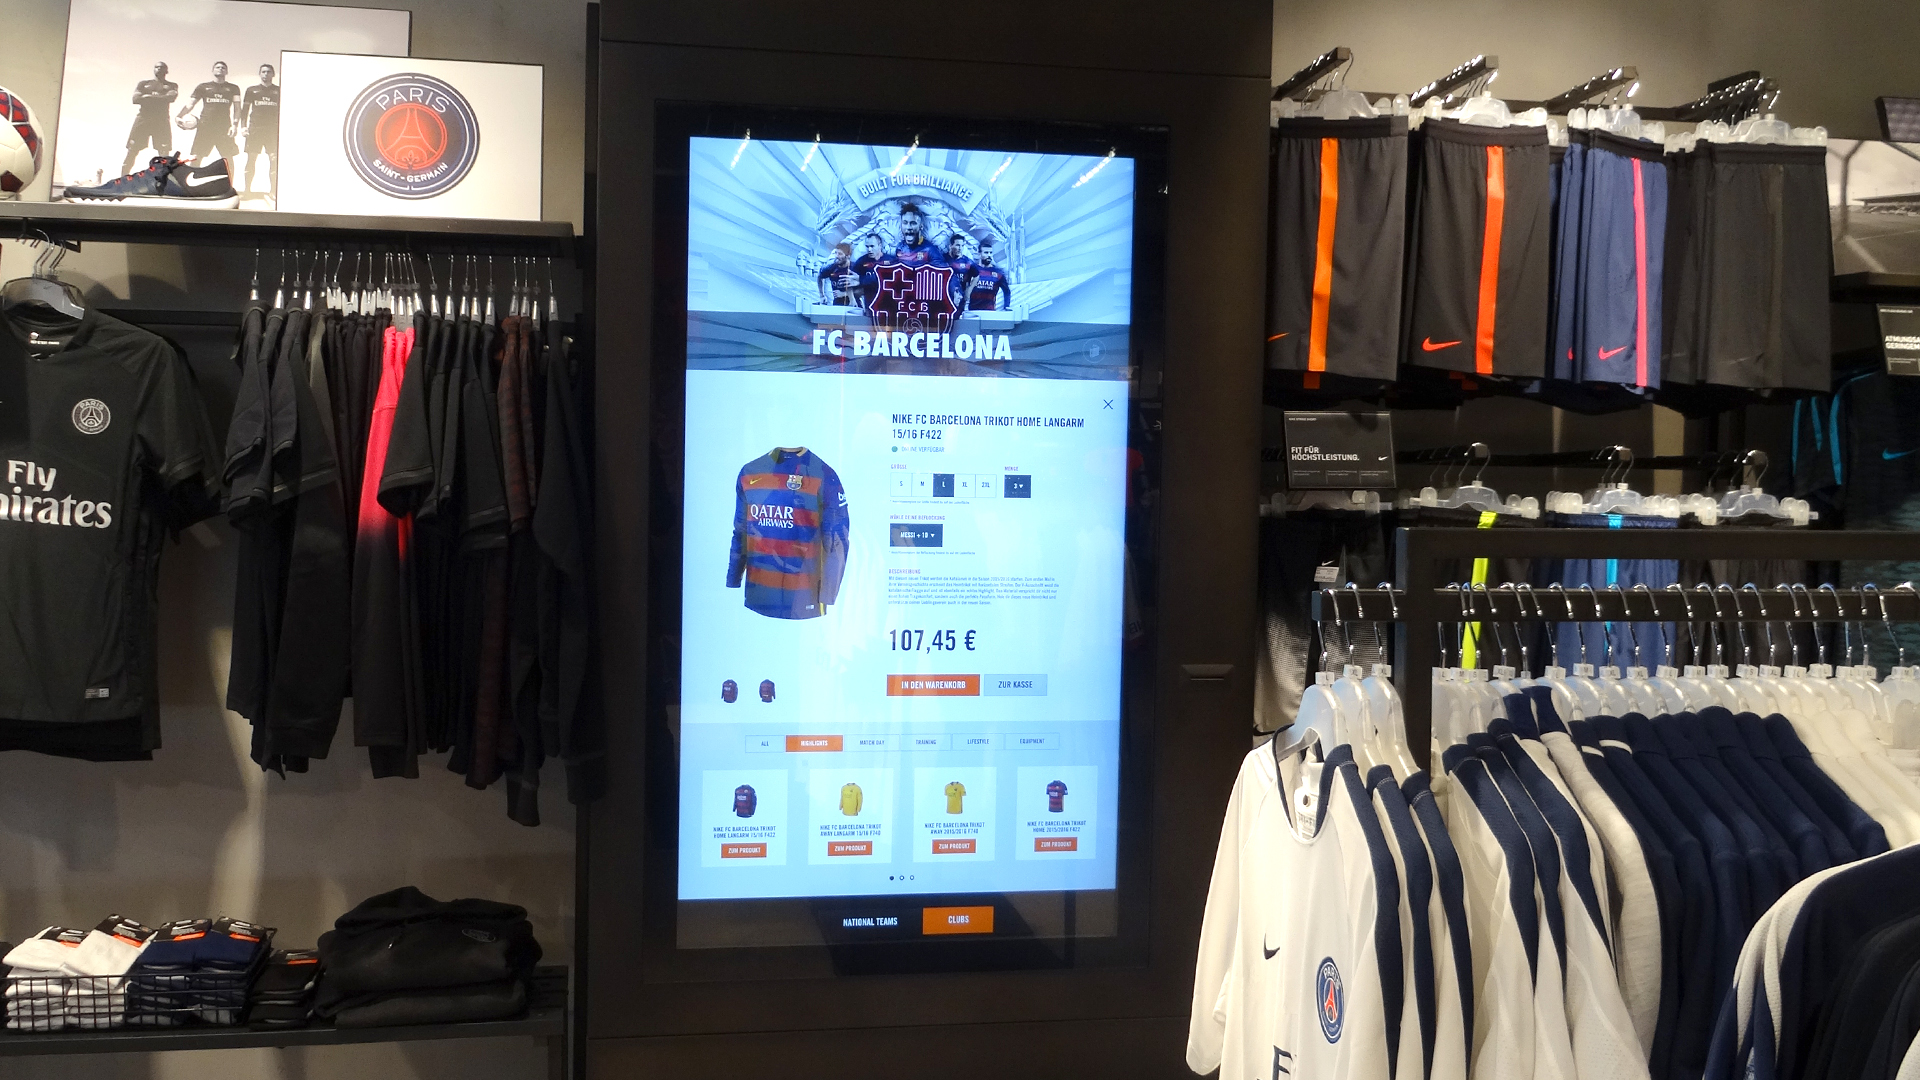 nike digital retail experience replica kiosk on 4k multitouch display